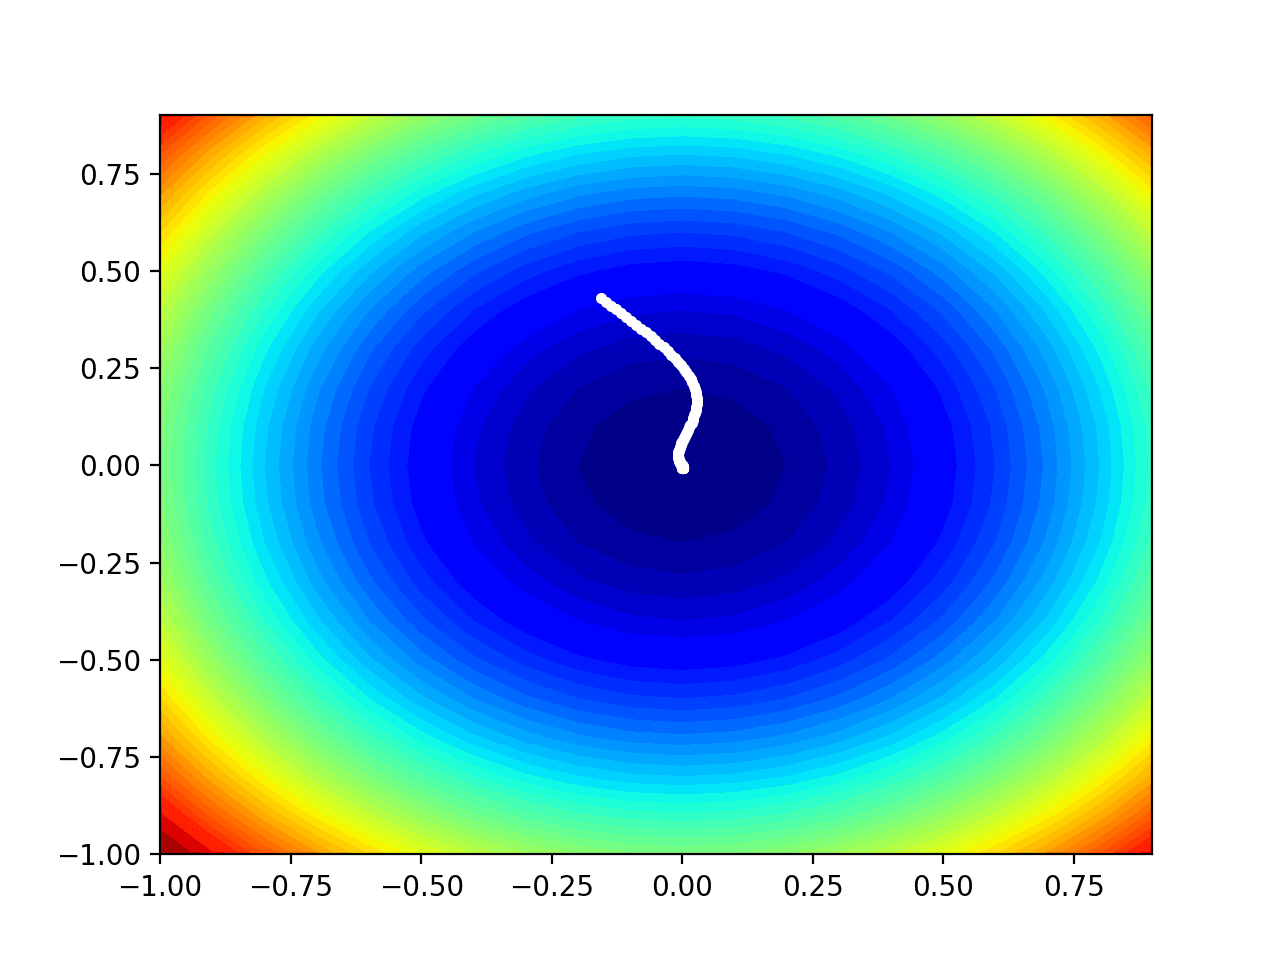 Contour Plot of the Test Objective Function With Adam Search Results Shown